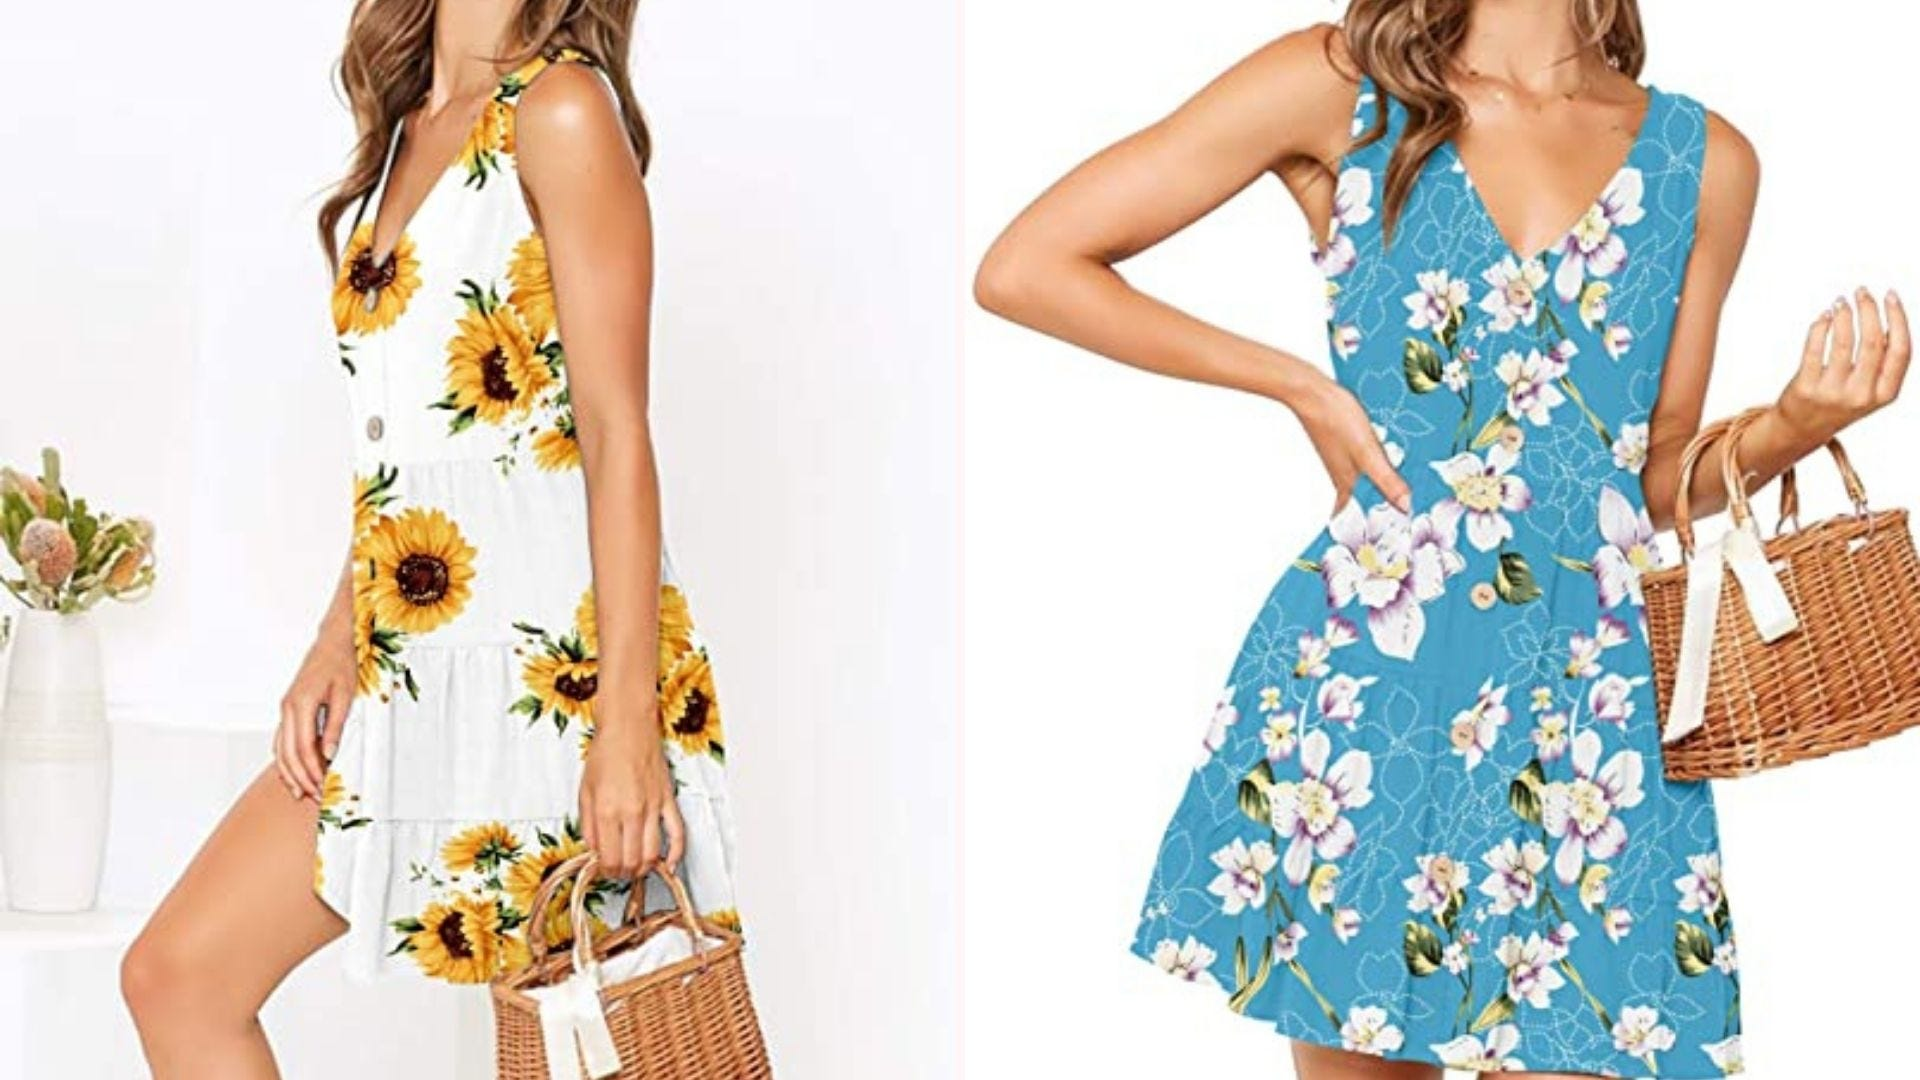 A woman in a sunflower print dress; a woman in a blue and white floral print dress